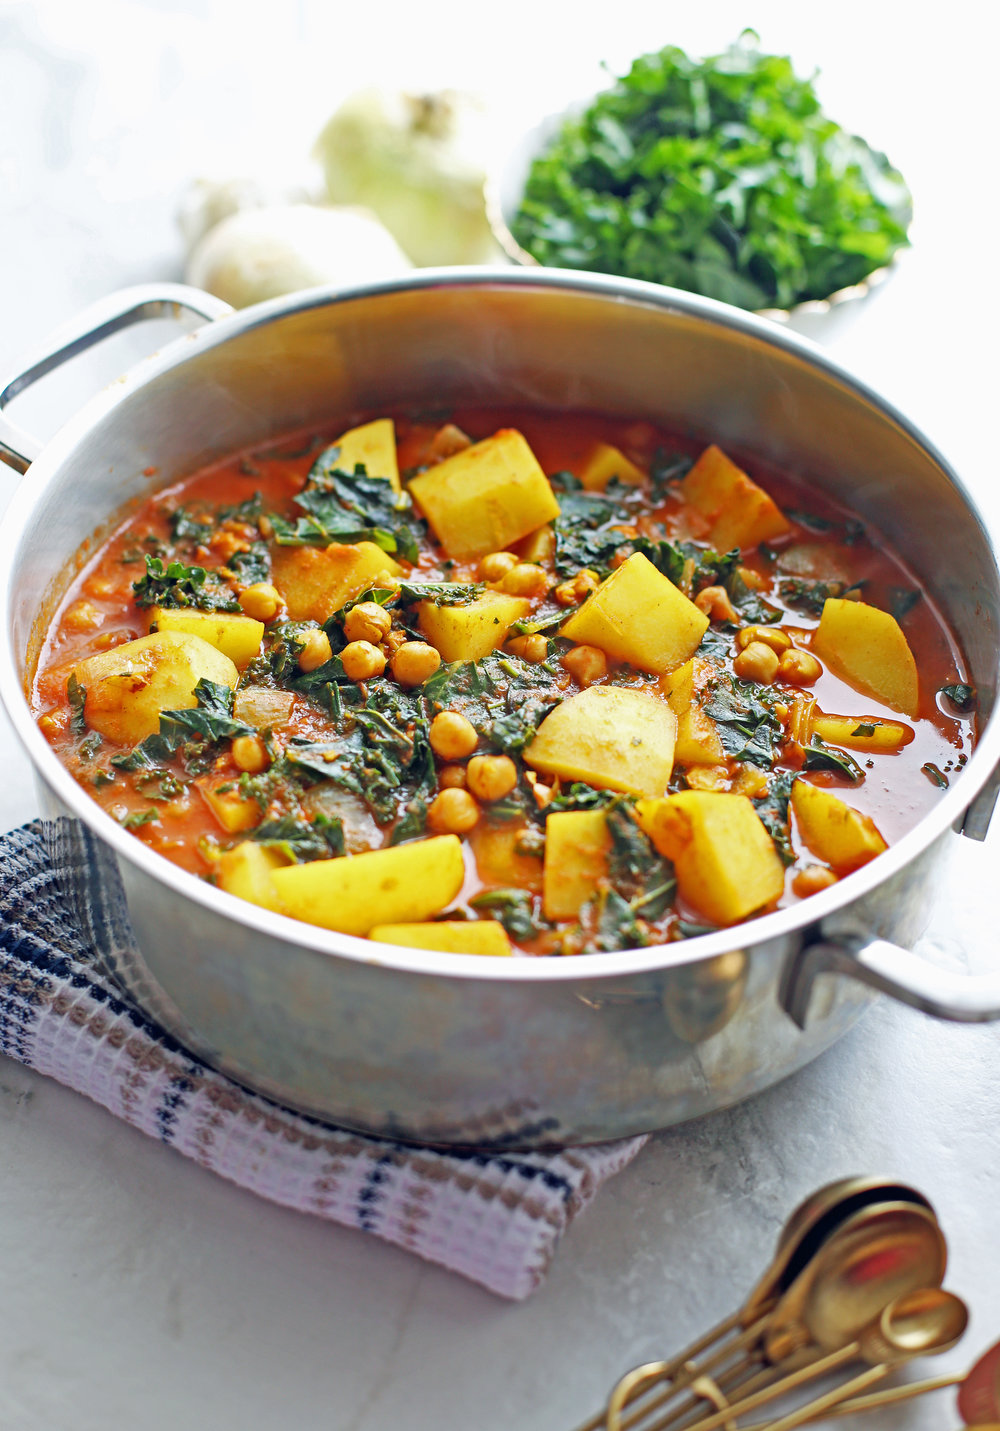 A side view of Spicy Chickpea Kale and Potato Curry in a large silver pot.